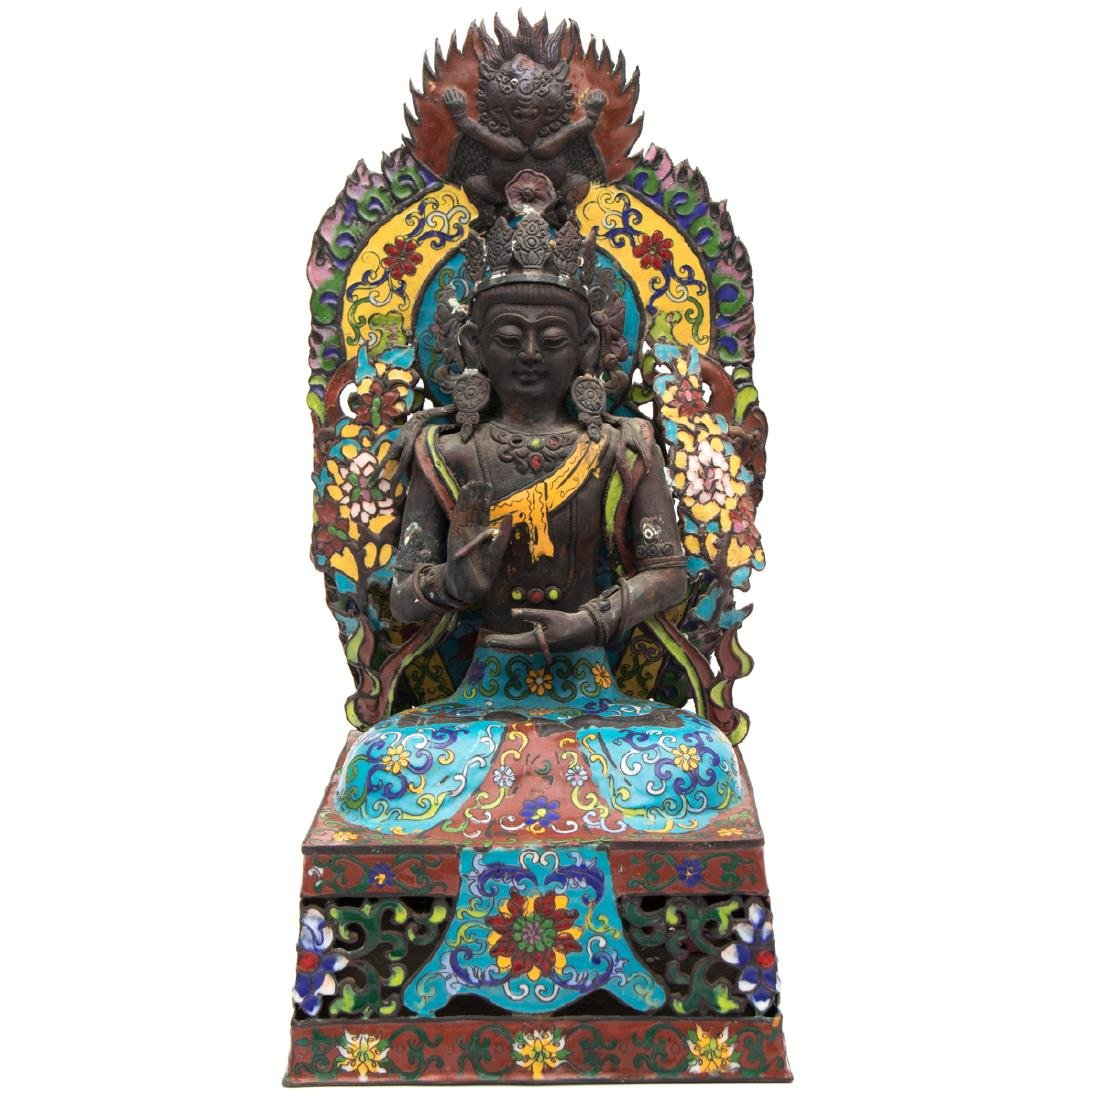 A Tibetan Cloisonné and Metal Firugre of a Deity, 20th